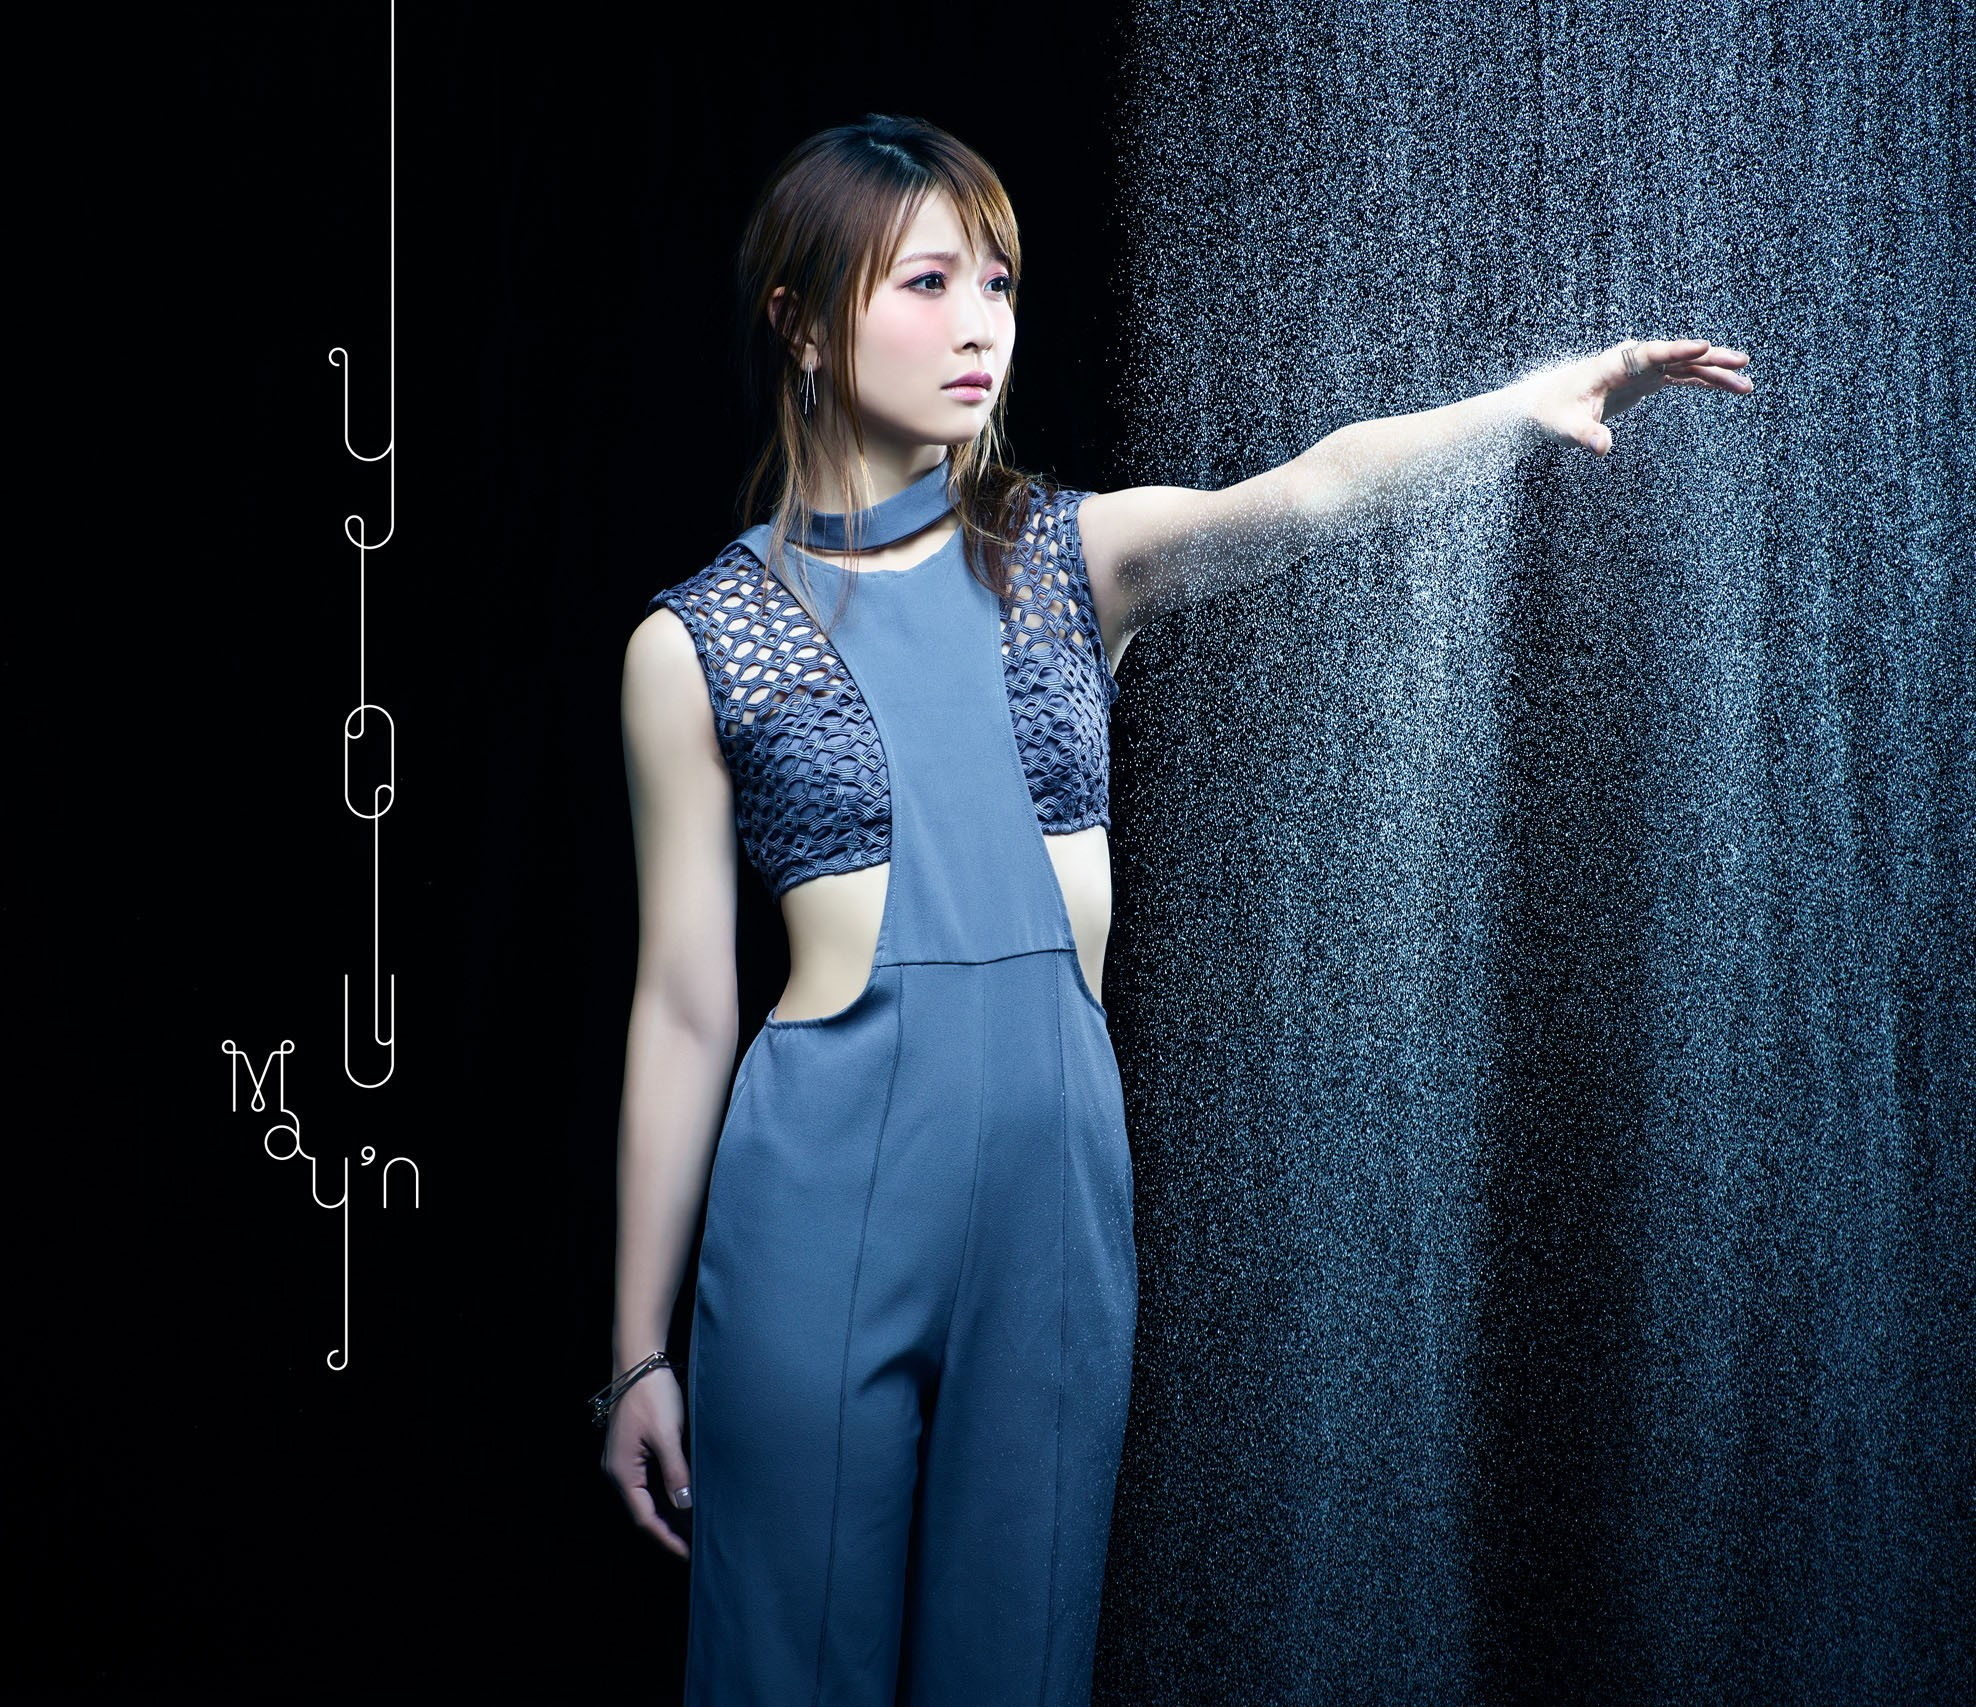 May'n『YOU』初回盤